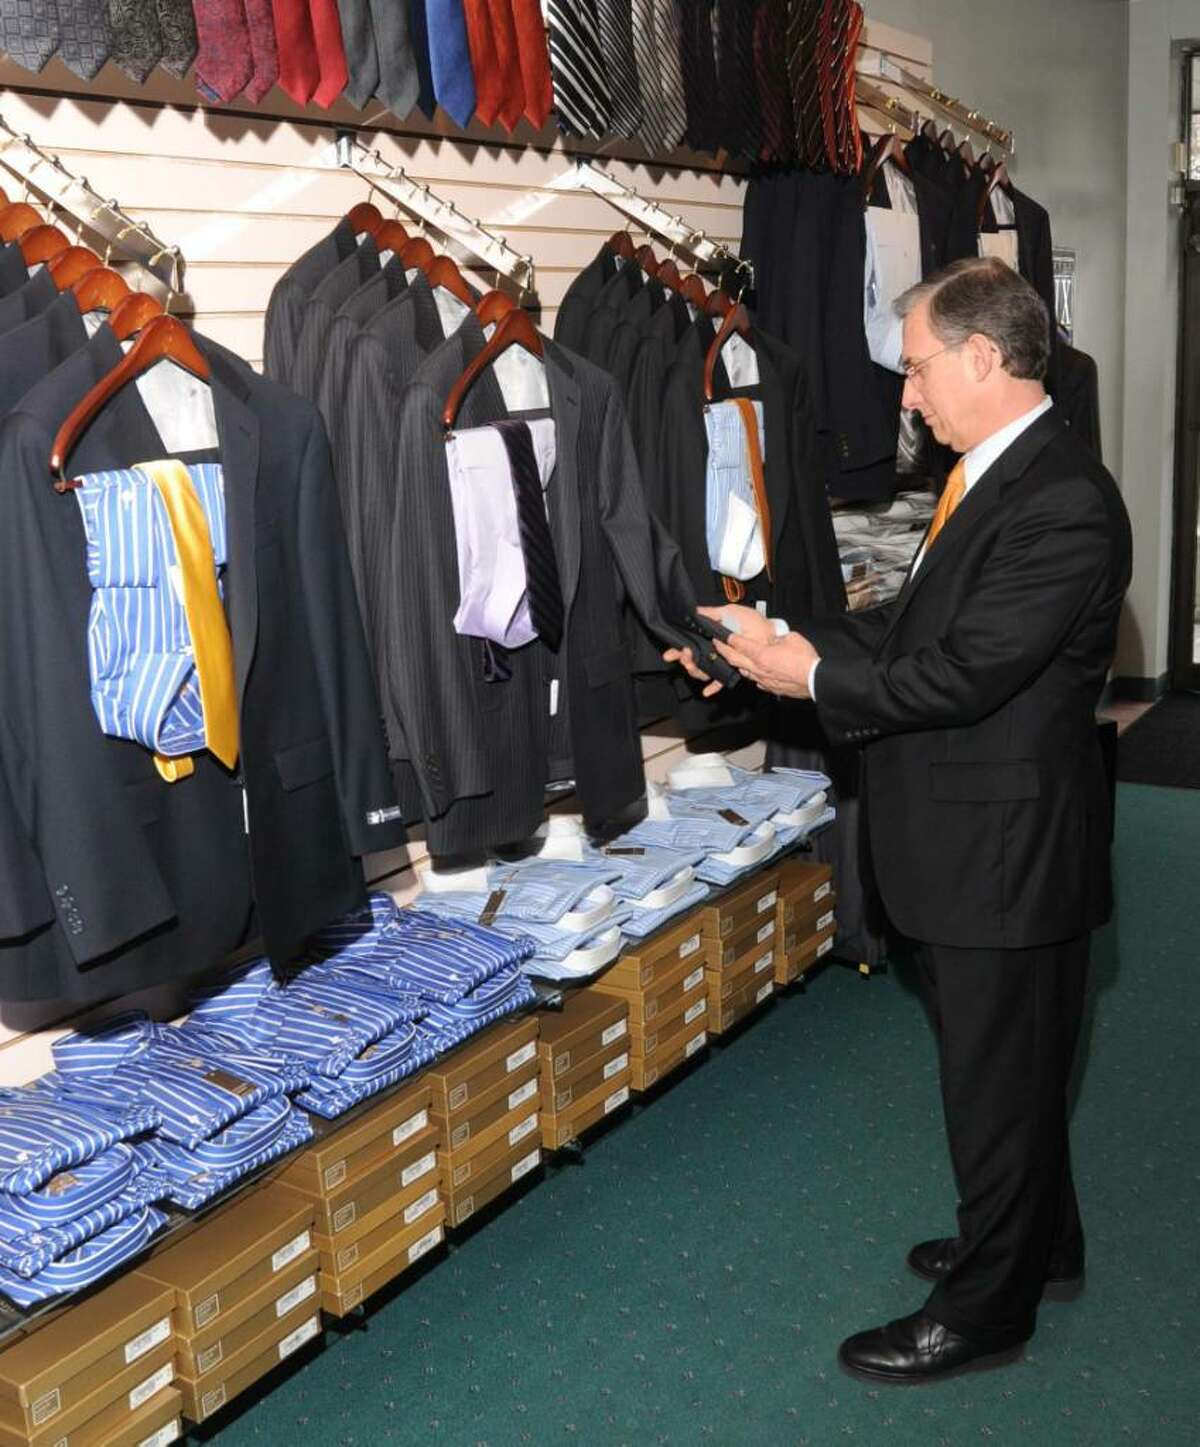 Albert Quell, owner of Bogey's Formal Wear, at 71 Newtown Rd., Danbury, CT, check the lable on a ready- made suit in the showroom, on Friday, Jan. 8, 2010.